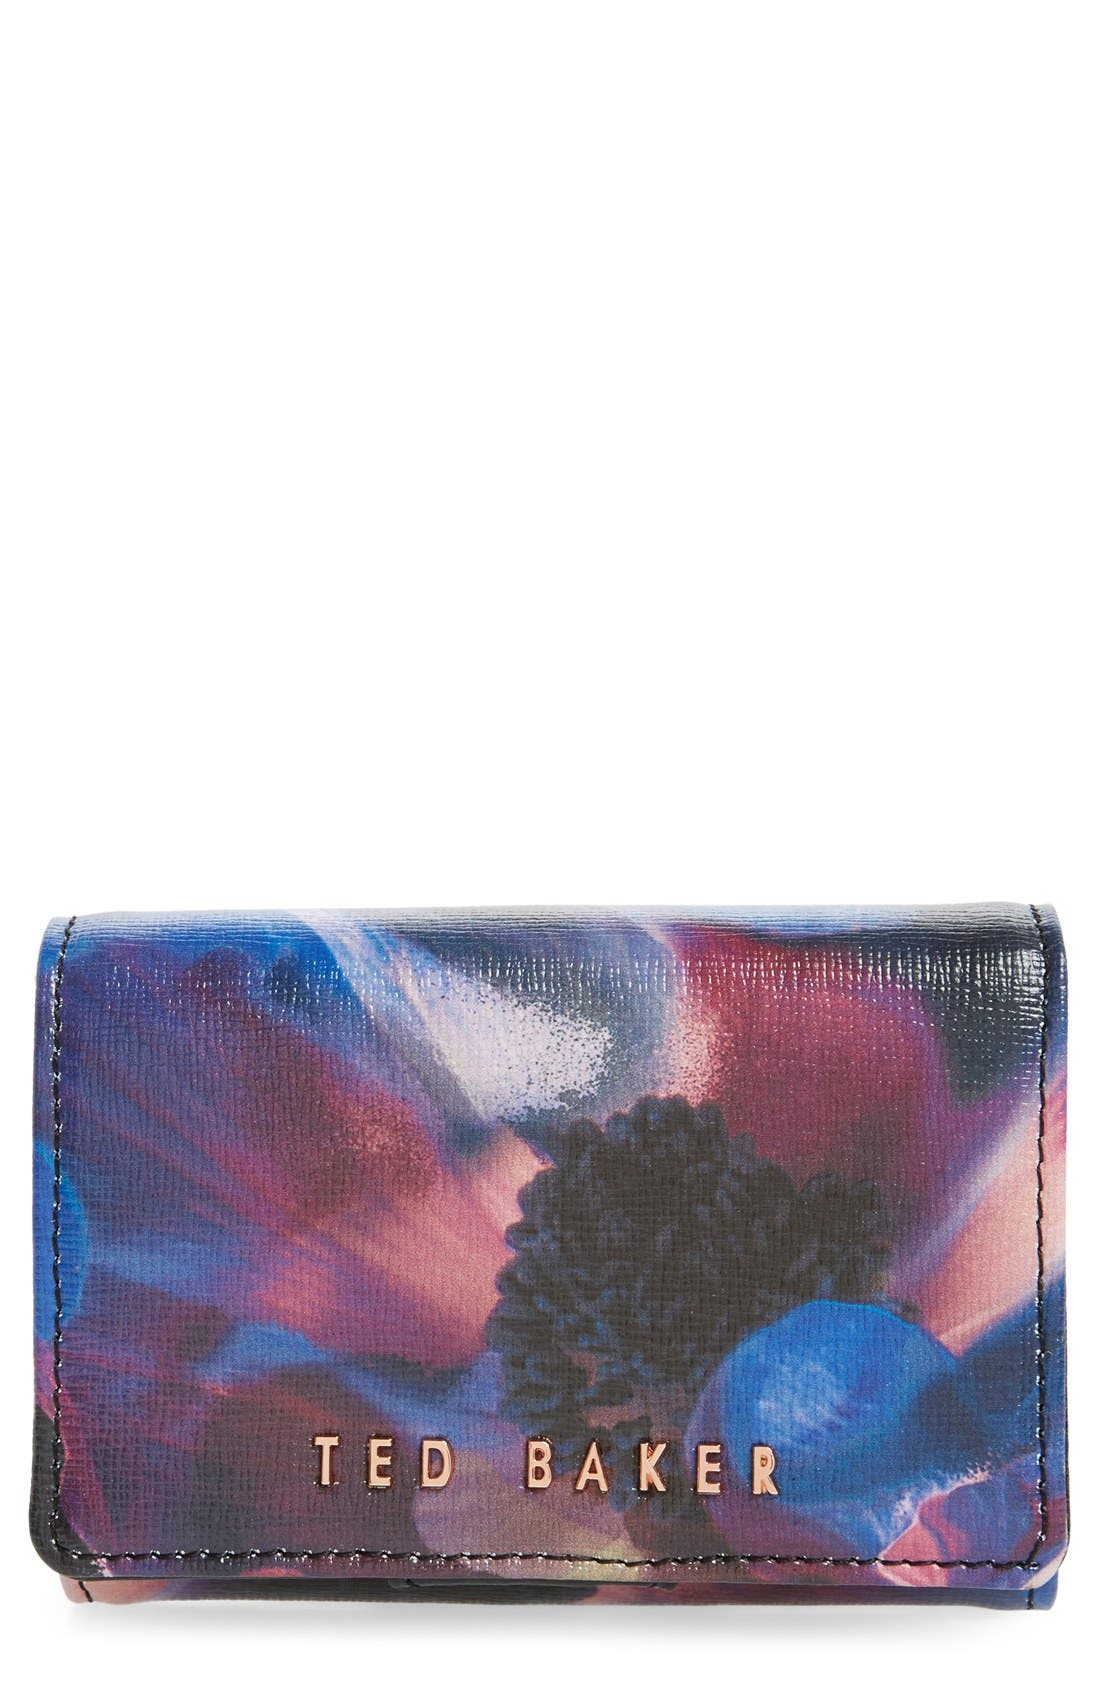 Main Image - Ted Baker London 'Cosmic Bloom' Floral Print Leather Wallet